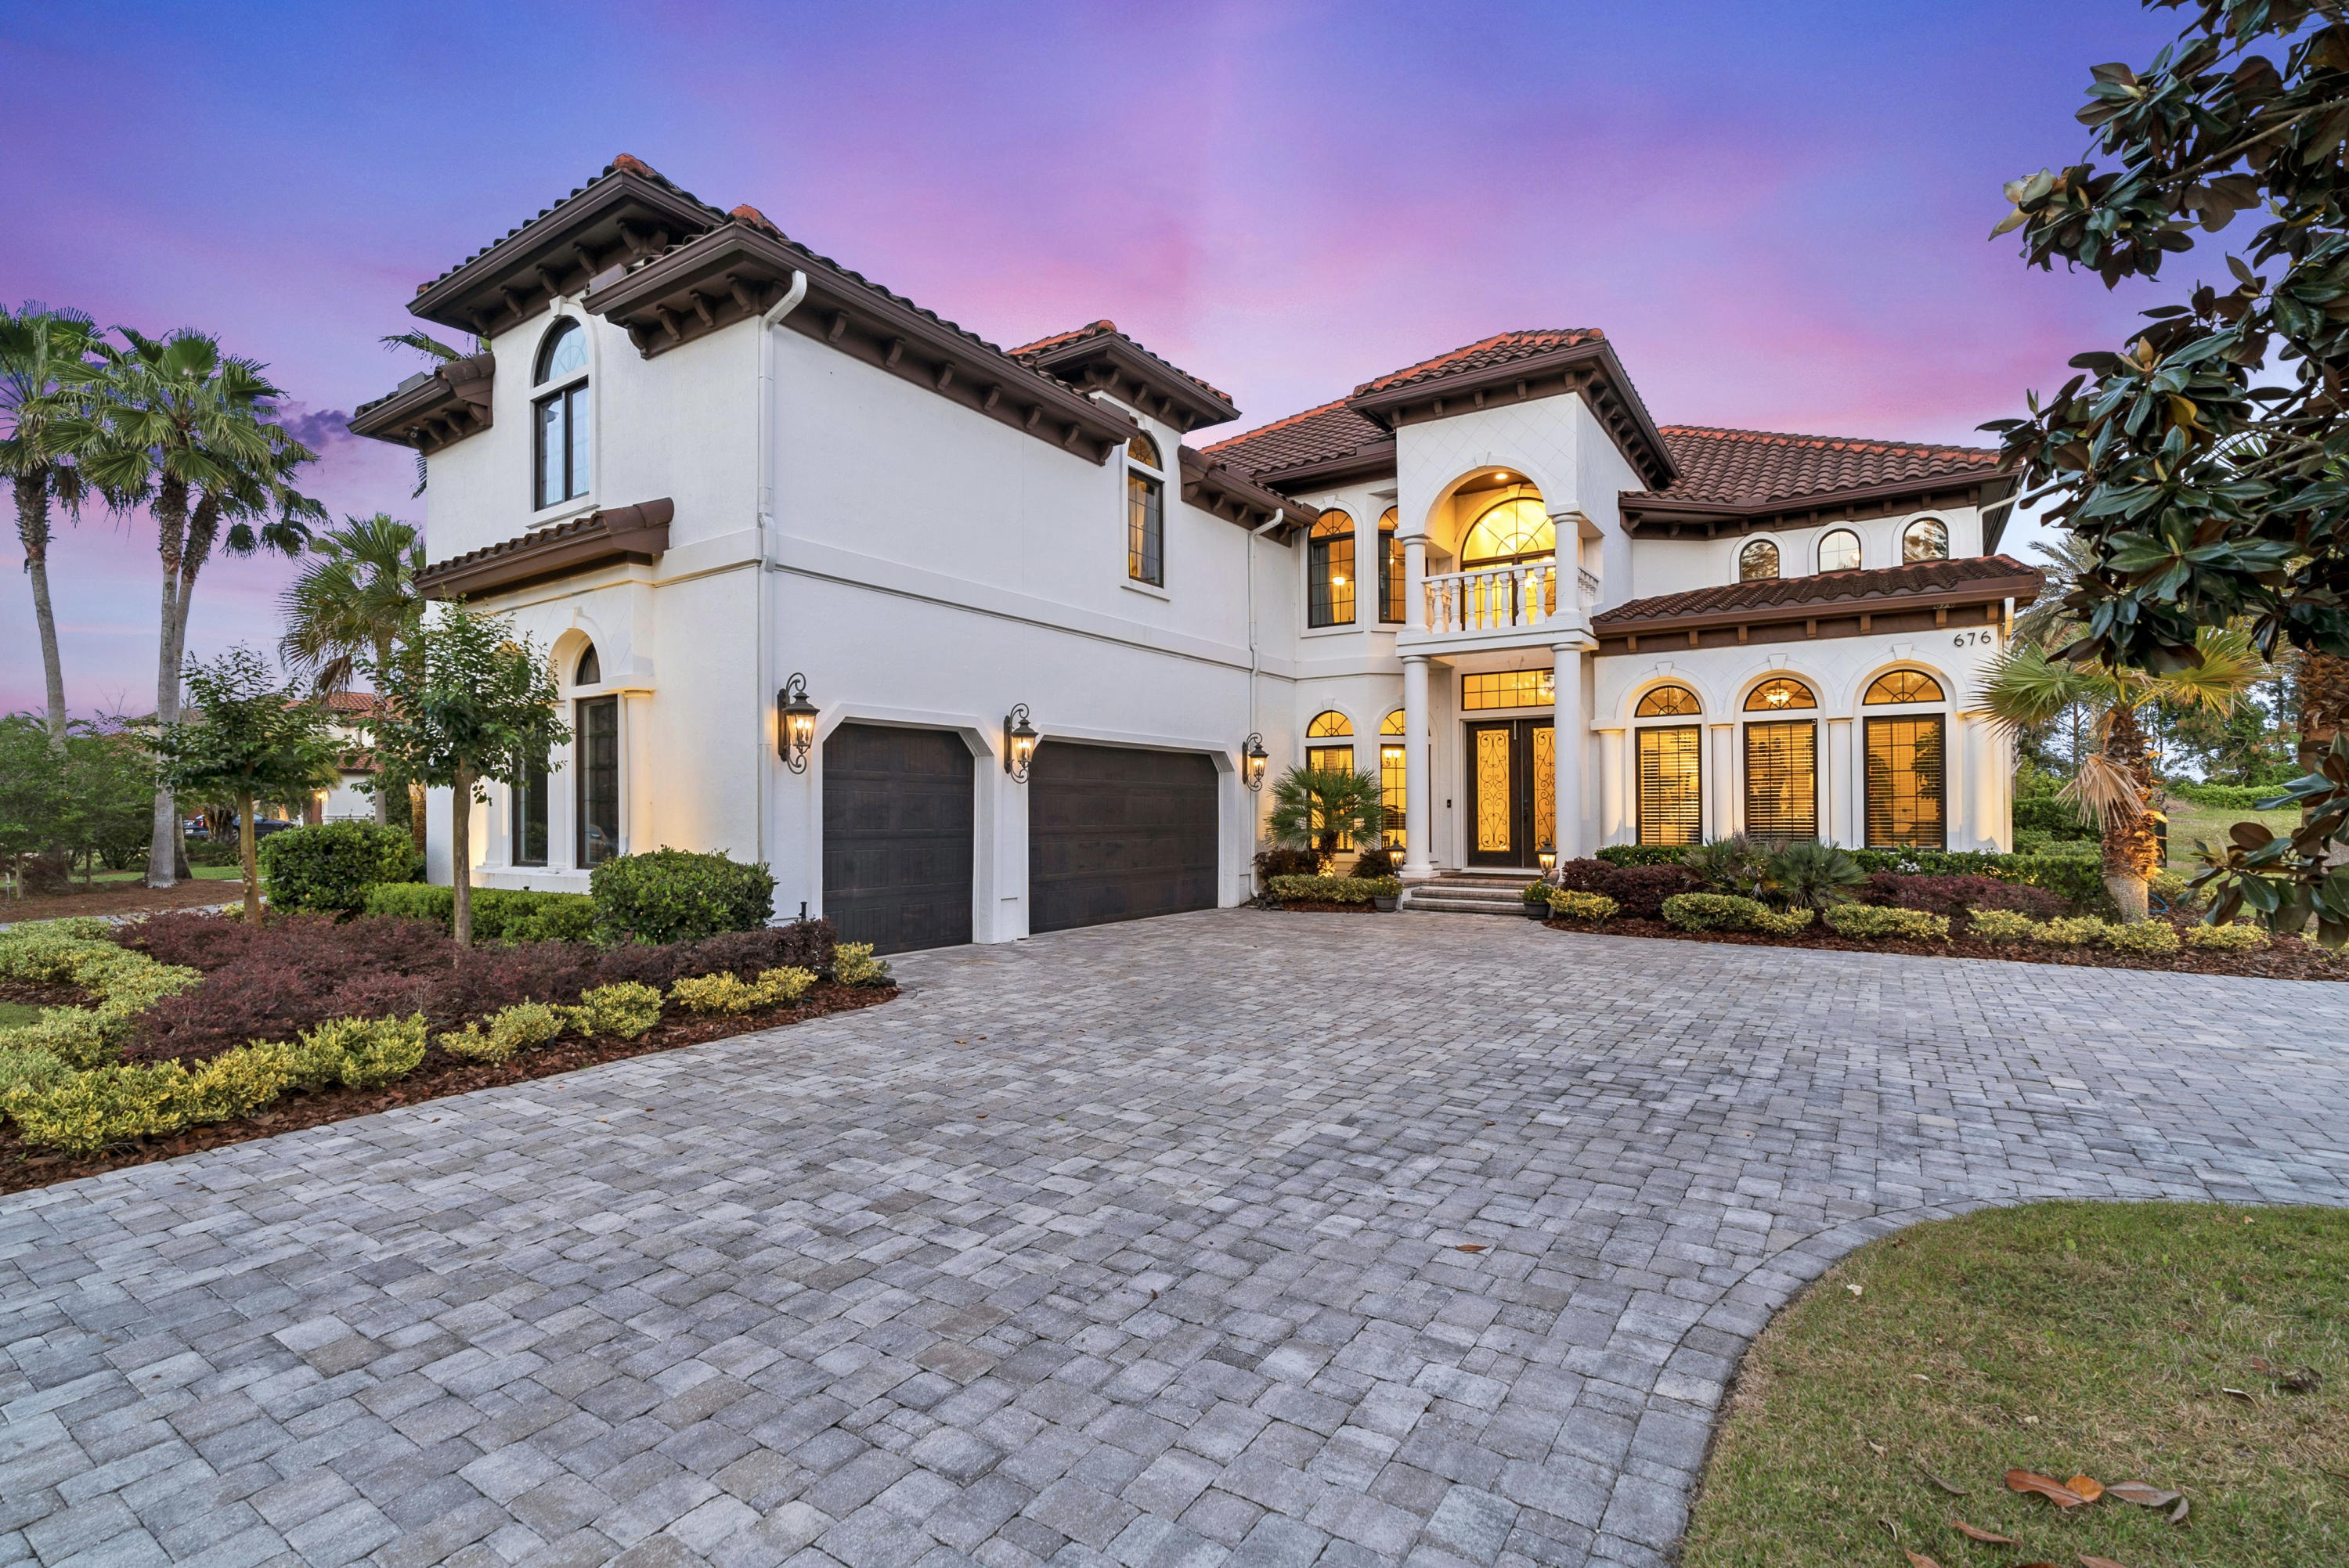 "THIS IS YOUR DREAM HOME! Breath taking sunrise & golf course views from this 5 bed/ 6 bath custom designed pool home. Luxuries Include: Grand foyer accented by a spiral staircase, formal dining rm, office w/ French doors & coffered ceiling. Rich scraped wood floors. An epicurean's dream kitchen featuring Wolf & Subzero appliances, designer cabinets w/ Viatera quartz countertops, hammered copper deep sink & hood vent. 1st & 2nd level master suites.The main level boast a Mediterranean styled bath & luxury shower. Lg. coffered high ceiling family room. 2nd level spacious spare bedrooms. Loft /Play Rm w/ Balcony golf view. Recreation/ Theater Room.  Backyard is ultimate playground spotlighted by the custom heated salt water pool & spa. Putting green & spectacular covered detached Cabana & bar                          ADDITIONAL HOME FEATURES  "" Nearly 5400 ft.² Of Air Conditioned Space  "" CDD Bond Paid In Full. Low annual Maintenance Fee  "" Decadent Custom Designed Master Closet  "" Control 14  Home Automation  "" Whole House Generac Natural Gas Generator  "" Plygem Mira Aluminum Casement Windows  "" Over 4000 ft.² of Travertine Pool & Lanai Decking  "" Oversized Custom Spa & Pool (Heated)  "" Outdoor Summer Kitchen/Cabana With 3 Commercial Heaters.   "" Extra Storage space for Golf Cart Storage.  "" Twin WIFI Controlled Gas Accent Torches  "" Custom Built Cabana & Entertainment Space that can seat up to 20.   Extended/ Summer Kitchen    "" 4 Hole Custom Putting Green  "" Fenced Rear Yard  "" Heavy Glass Door Sliders  "" 3 Tankless Water Heaters  "" 16-SEER Comfort 2-Speed HVACS  "" Remote Shade Control Blinds  "" Scraped Harwood & Custom Tile Flooring  "" Open Cell Foam Insulation  "" 300 Foot Deep Artesian Well For irrigation  "" Custom Landscape Lighting  "" Pergola With Teak Swing  "" Fire Pit  "" Long Courtyard Styled Pavered Driveway  "" 3 Car Garage With Overhead & Cabinet Storage   ""Central Vacuum System  Custom Fixtures & Lighting  "" Soft Close Designer Kitchen Drawers & Custom Cabinetry  GREAT COMMUNITY AMENITIES  INCLUDING:  Nature Trails And Boardwalk to the Intracoastal  Opportunity to Join An Arthur Hills Signature Design Golf Course & Club  Tennis, Pickleball, Parks, and Soccer Fields  A Rated Fitness Center with Lap Pool  Recreational Pool With Slide   Premium Name  Grocery Shopping and Dining In The Neighborhood  A rated Elementary School In The Neighborhood."